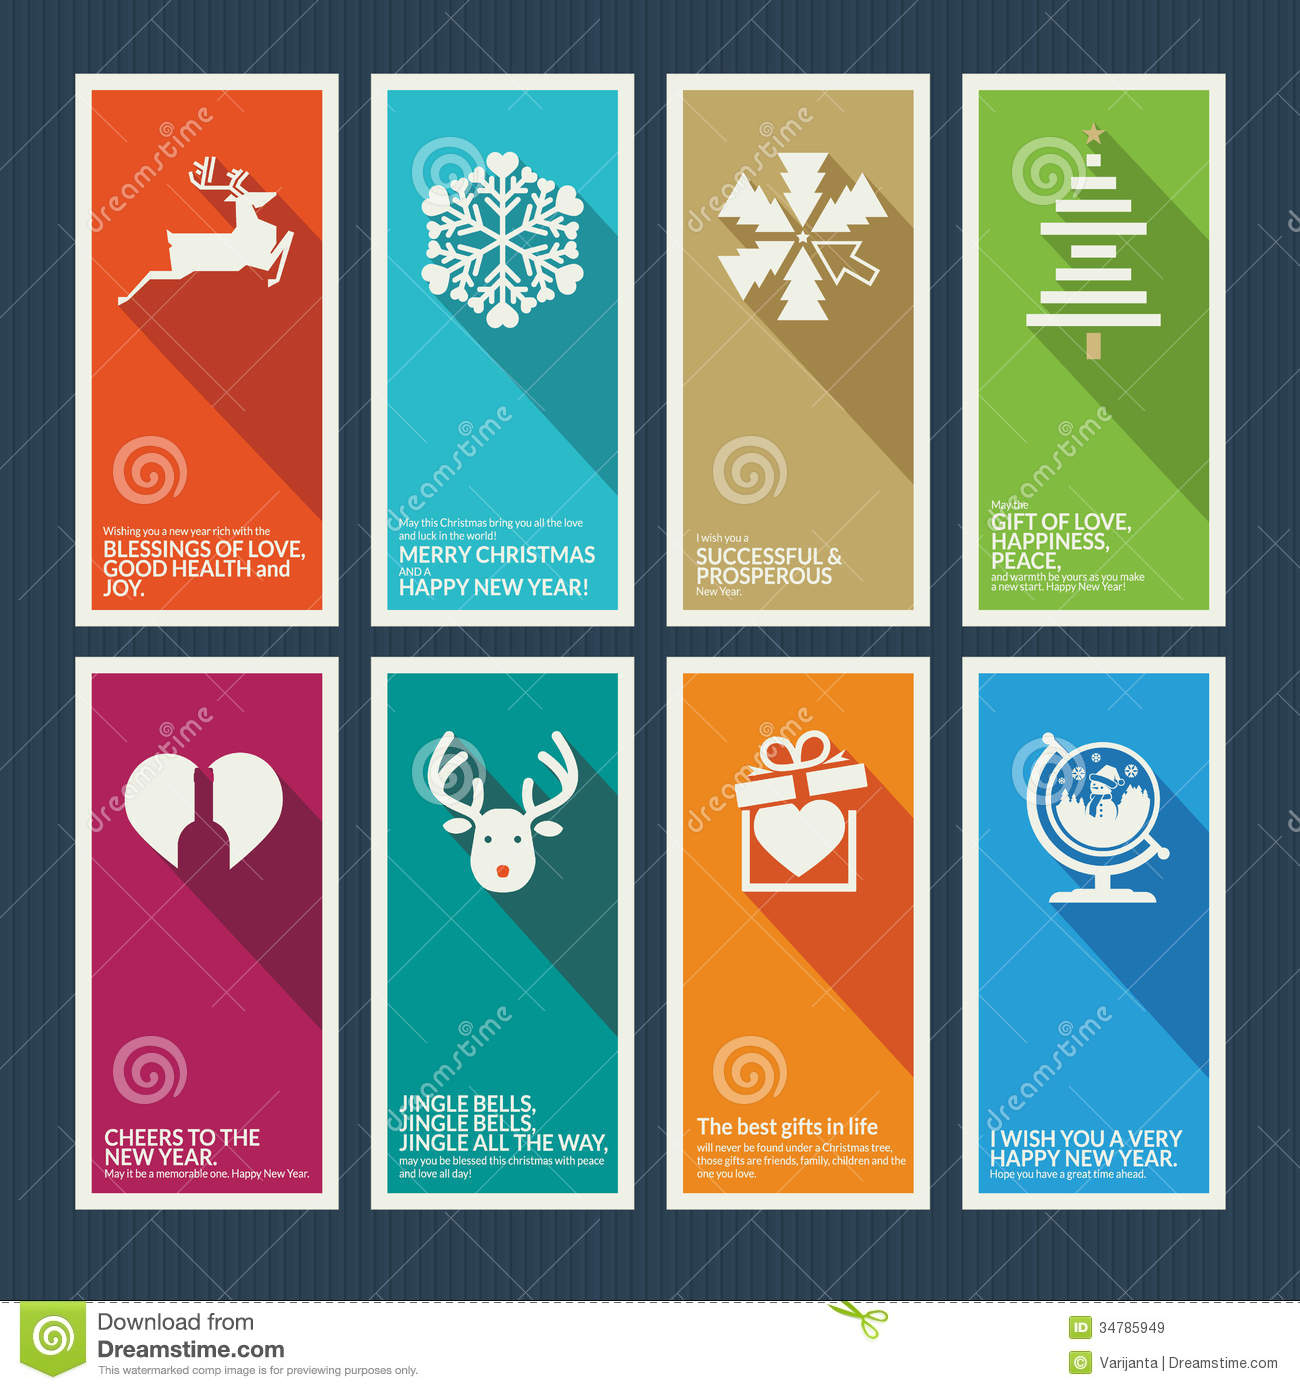 All graphics newest royalty free stock photos stock illustrations - Set Of Christmas And New Year Greeting Cards Royalty Free Stock Images